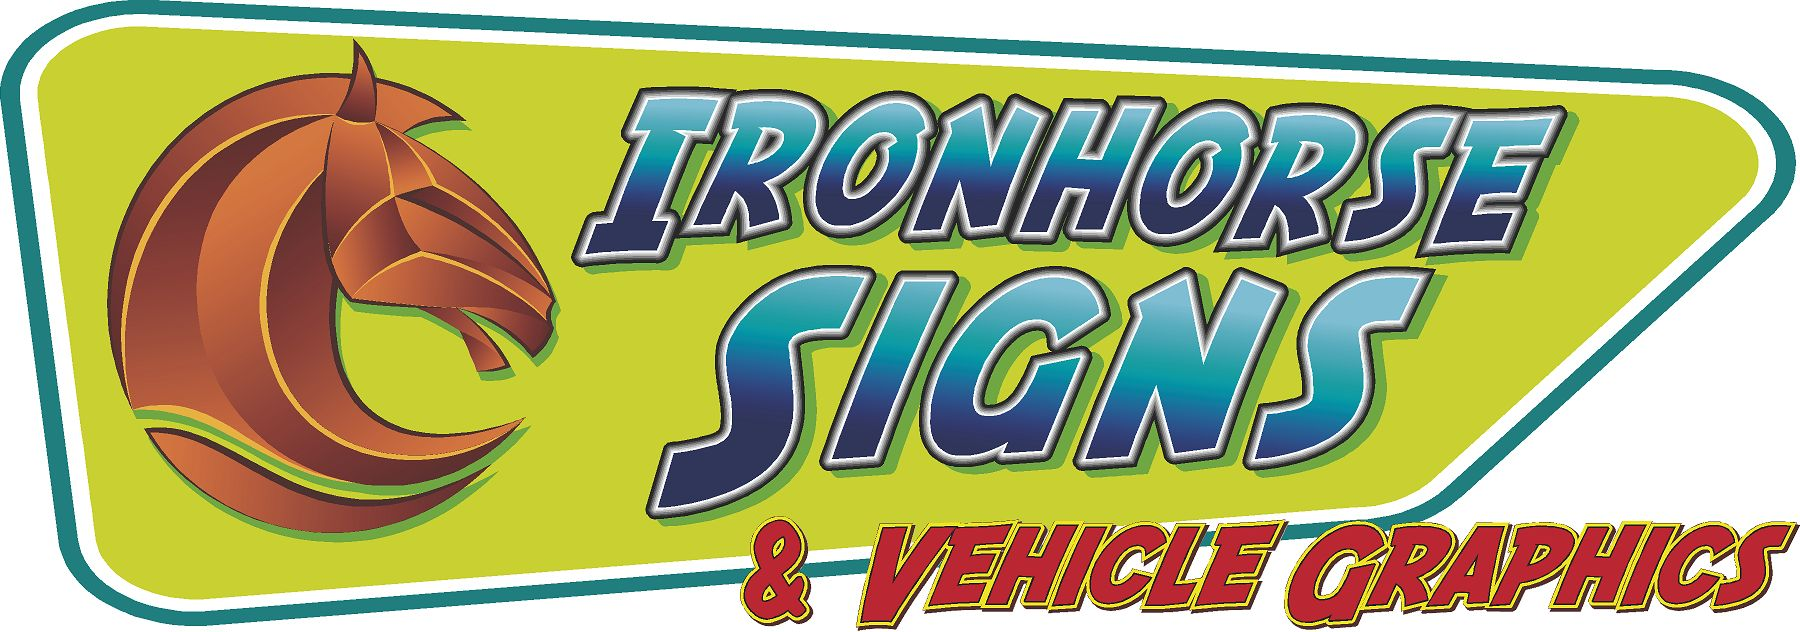 ironhorse-logo-new.jpg